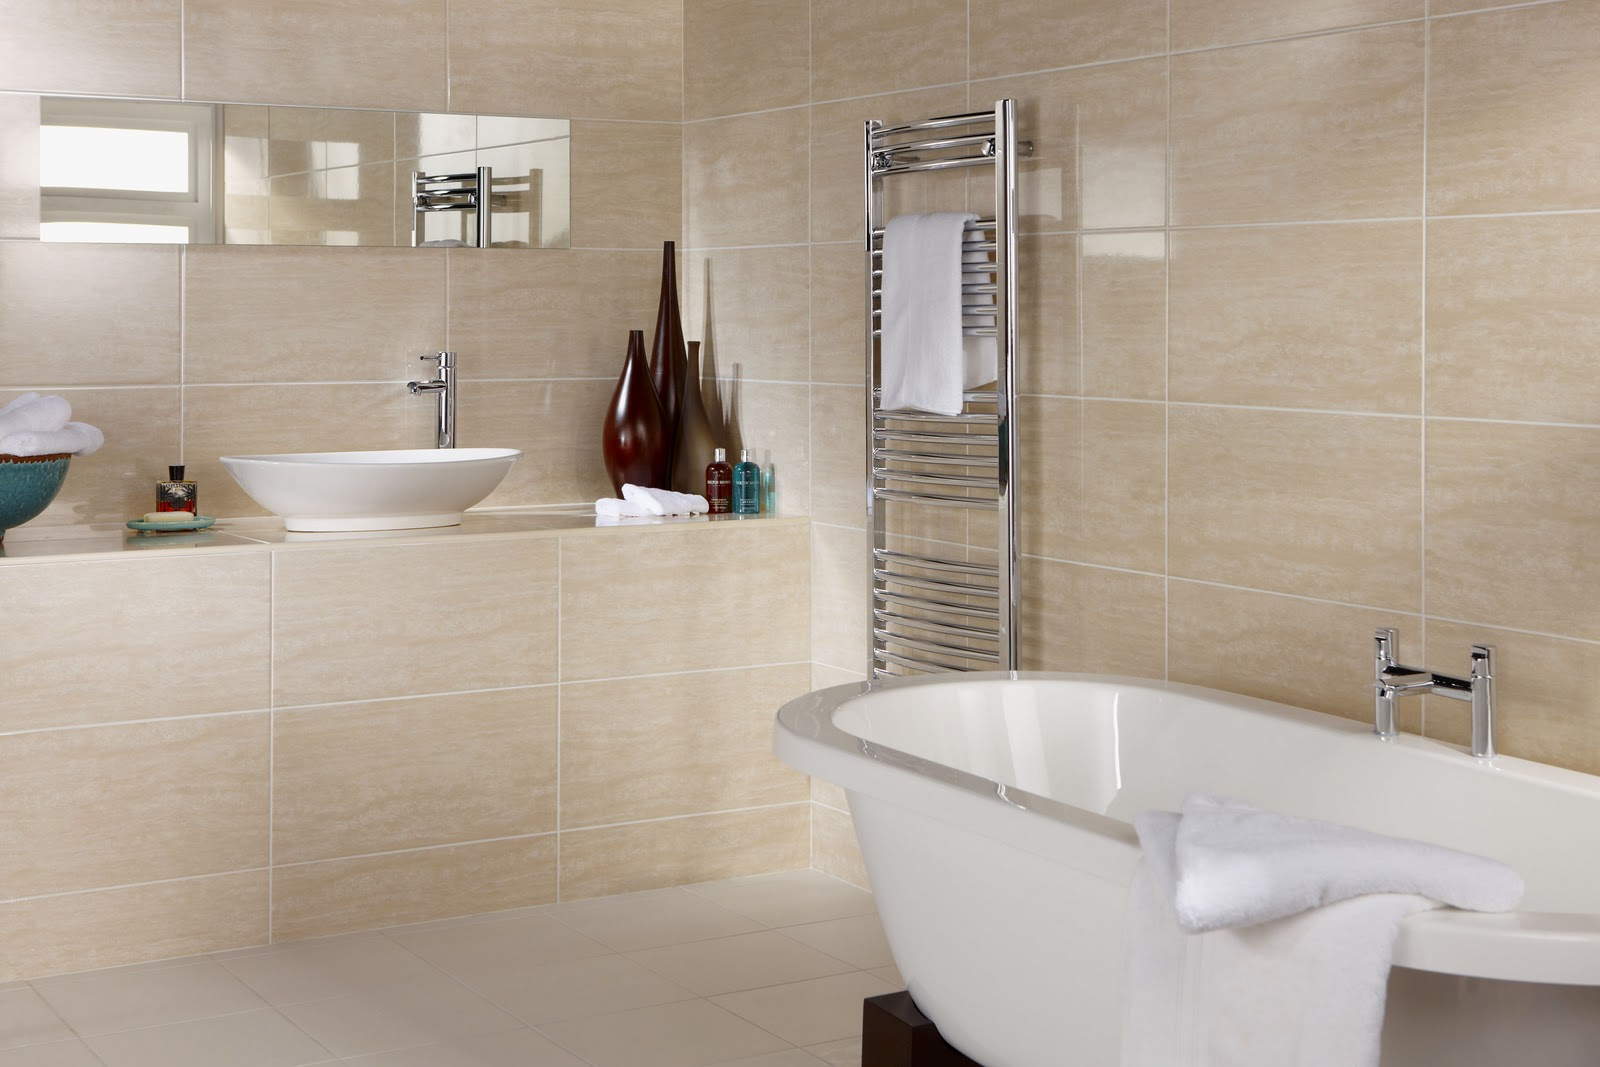 Bathroom tiles white bathroom tiles with border shiny black bathroom - Victoria Plumb Review